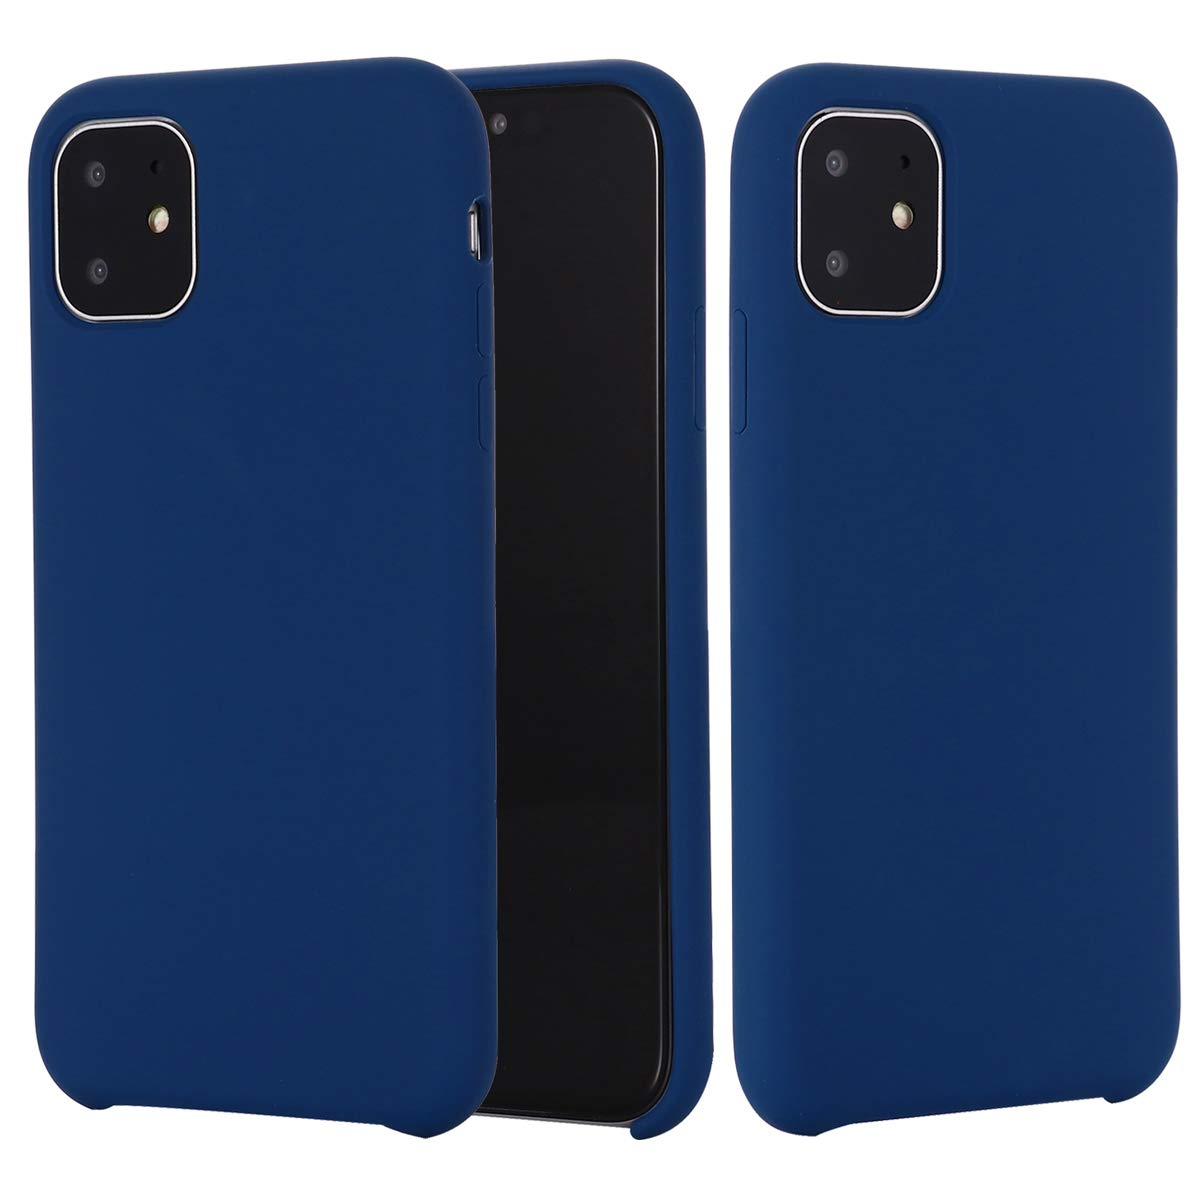 BeautyWill Cases for iPhone 11 Pro Max Case Liquid Silicone Smooth Gel Rubber Cover Ultra Slim Fit for iPhone 11 Pro Max 6.5 inch Royal-Blue